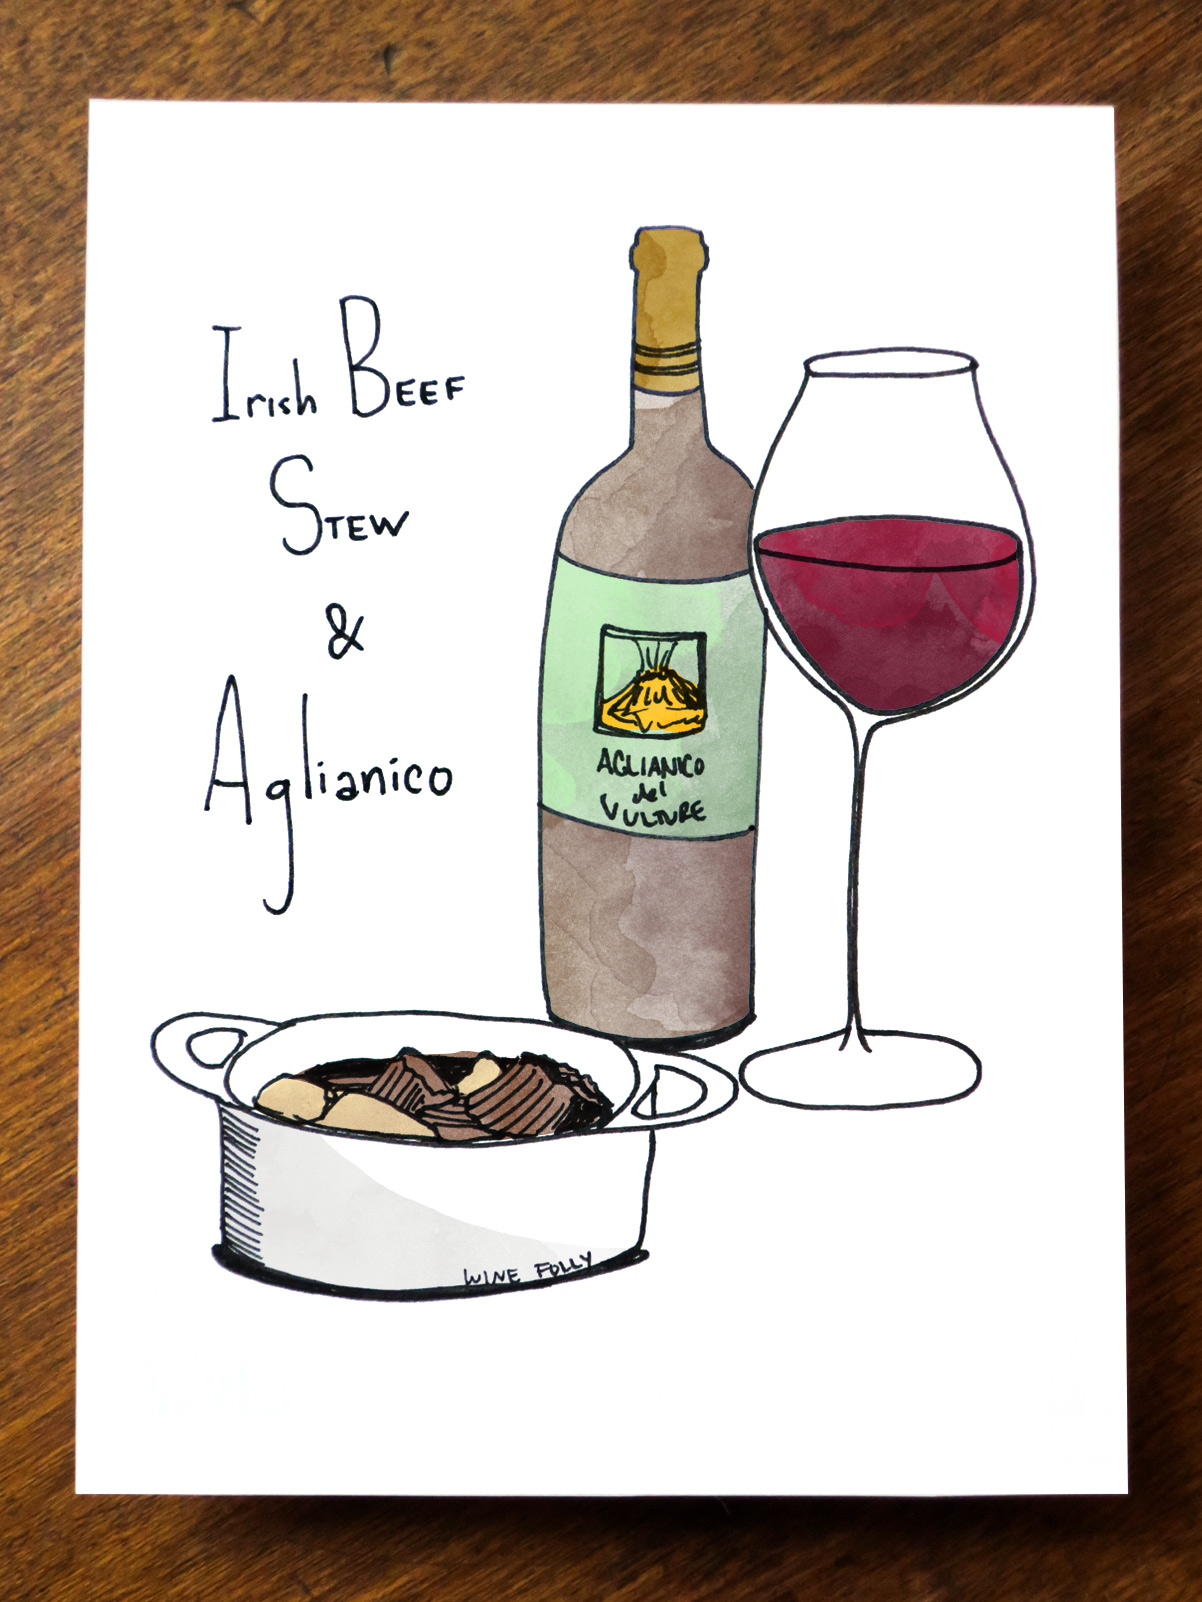 irish-beef-stew-wine-pairing-aglianico